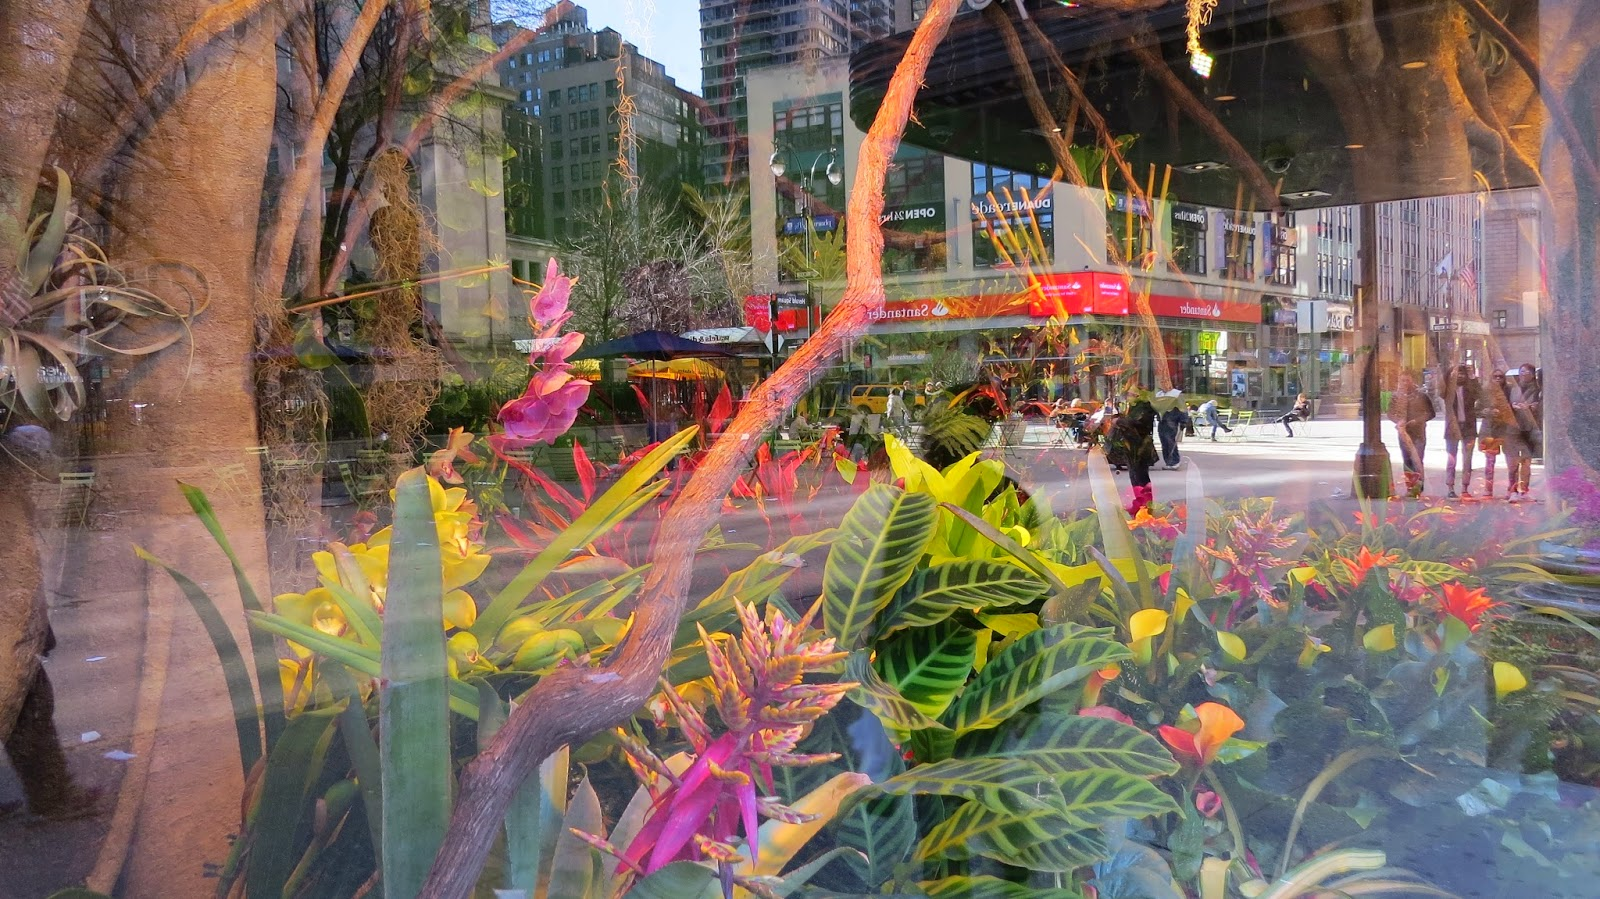 Reflections-on-The-Macy's-Flower-Show